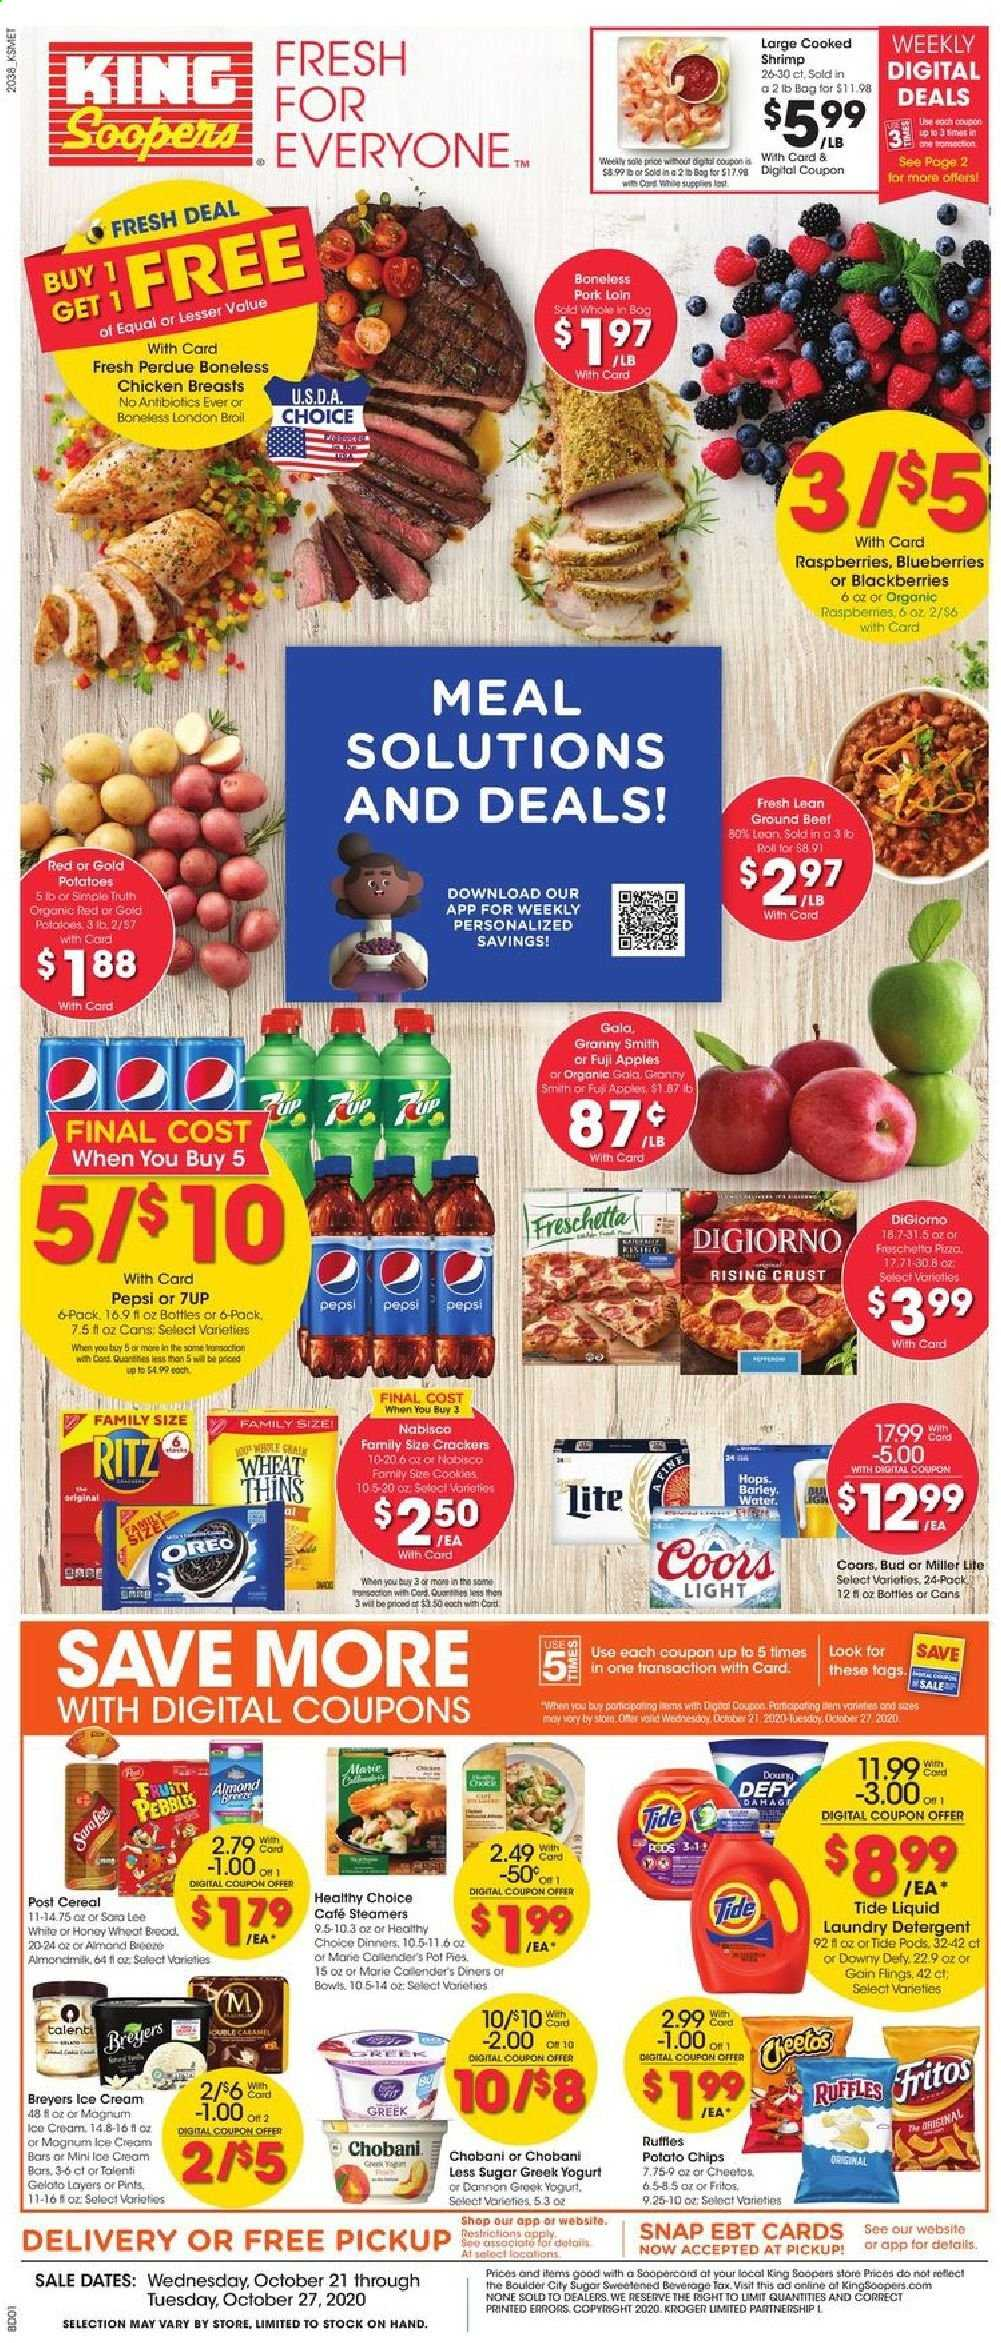 King Soopers Flyer - 10.21.2020 - 10.27.2020 - Sales products - apples, bag, barley, Beet, blackberries, blueberries, box, cereals, cookies, detergent, Downy, Fritos, Gain, greek yogurt, lens, Magnum, Miller Lite, raspberries, Tide, honey, ice cream, pizza, pork loin, pork meat, pot, pot pies, potato chips, potatoes, cheetos, chicken, chicken breast, Pepsi, Oreo, chips, fuji apple, Lee, Coors, laundry detergent, Apple, shrimps. Page 1.